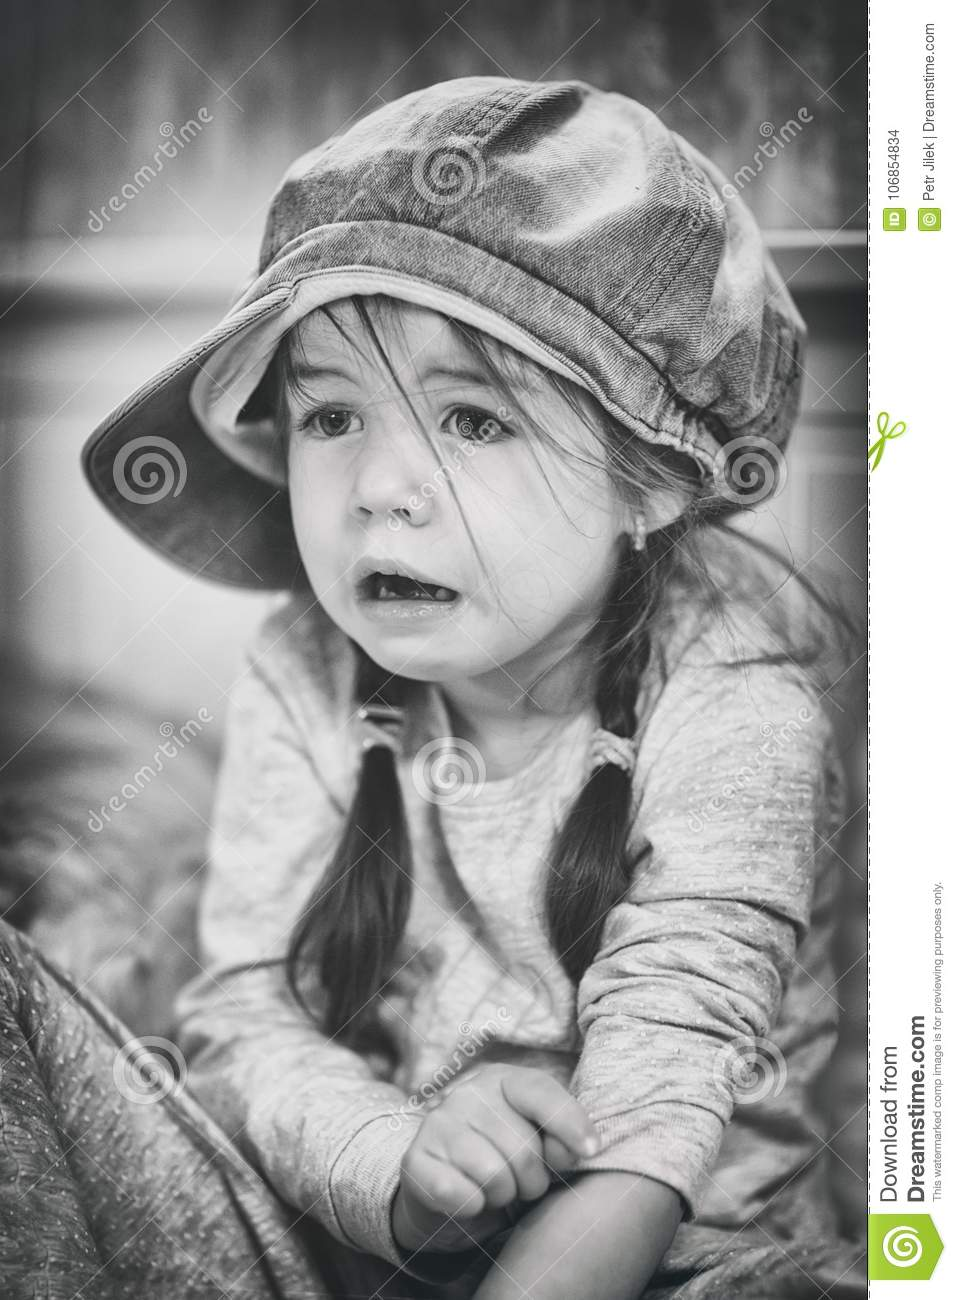 Sad child, black-white, sufferingLittle girl with fear in the face